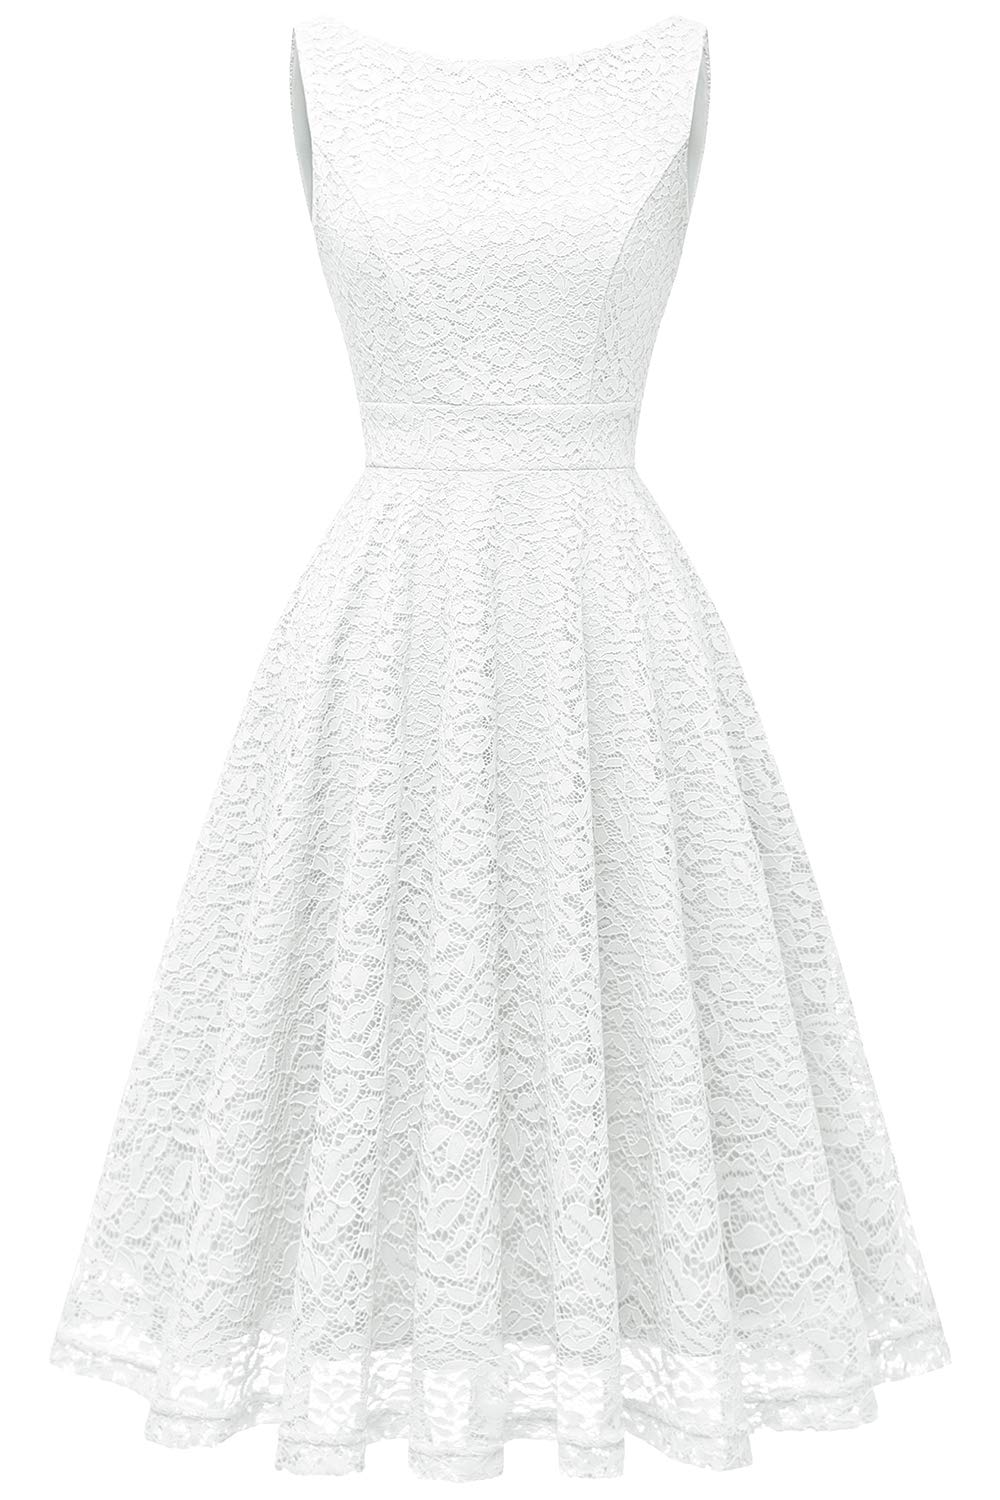 Bbonlinedress Women's Short Floral Lace Bridesmaid Dress V-Back Sleeveless Formal Cocktail Party Dress White M